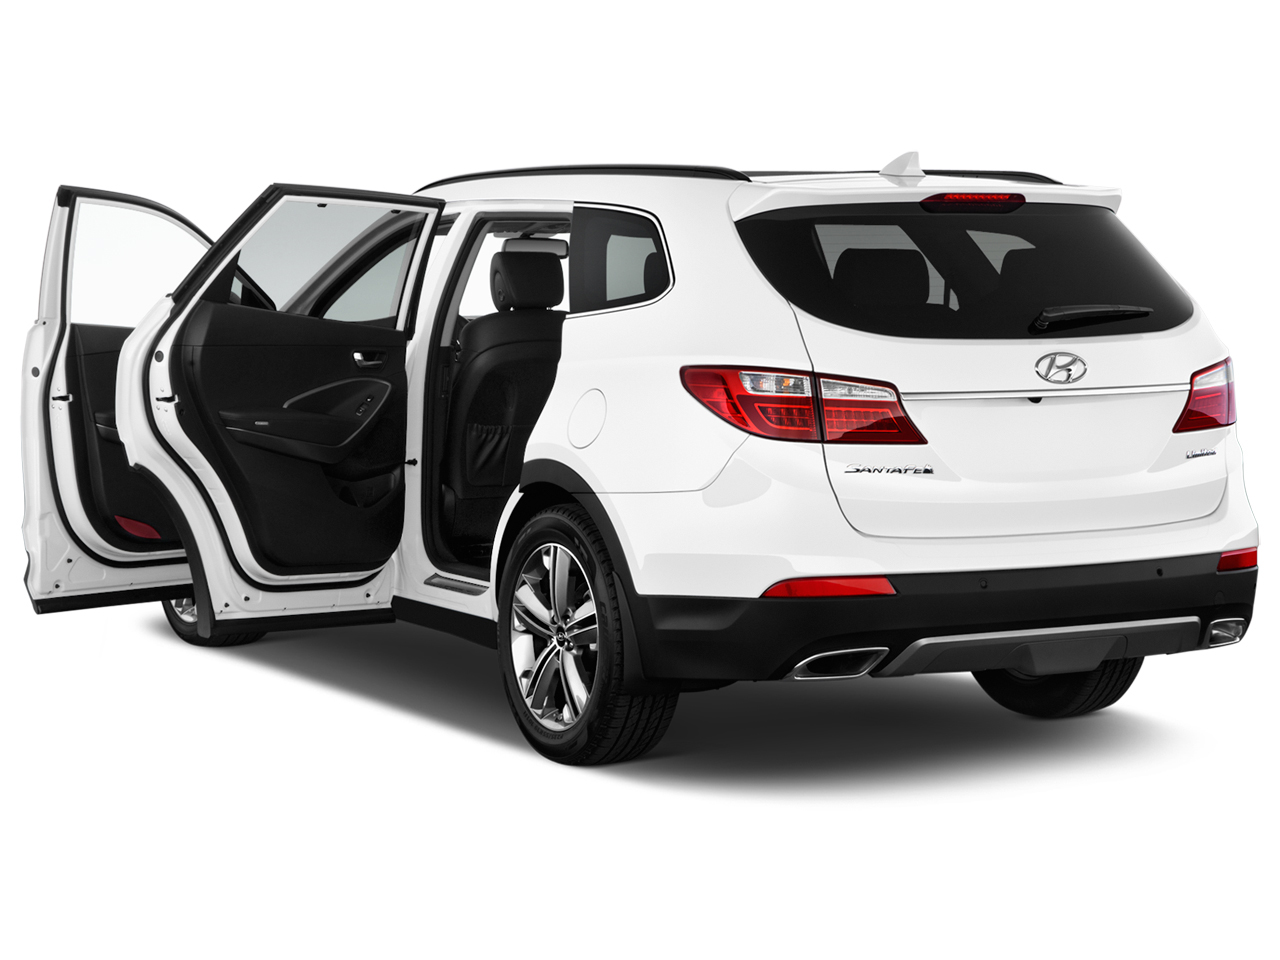 2018 hyundai grand santa fe prices in uae gulf specs. Black Bedroom Furniture Sets. Home Design Ideas